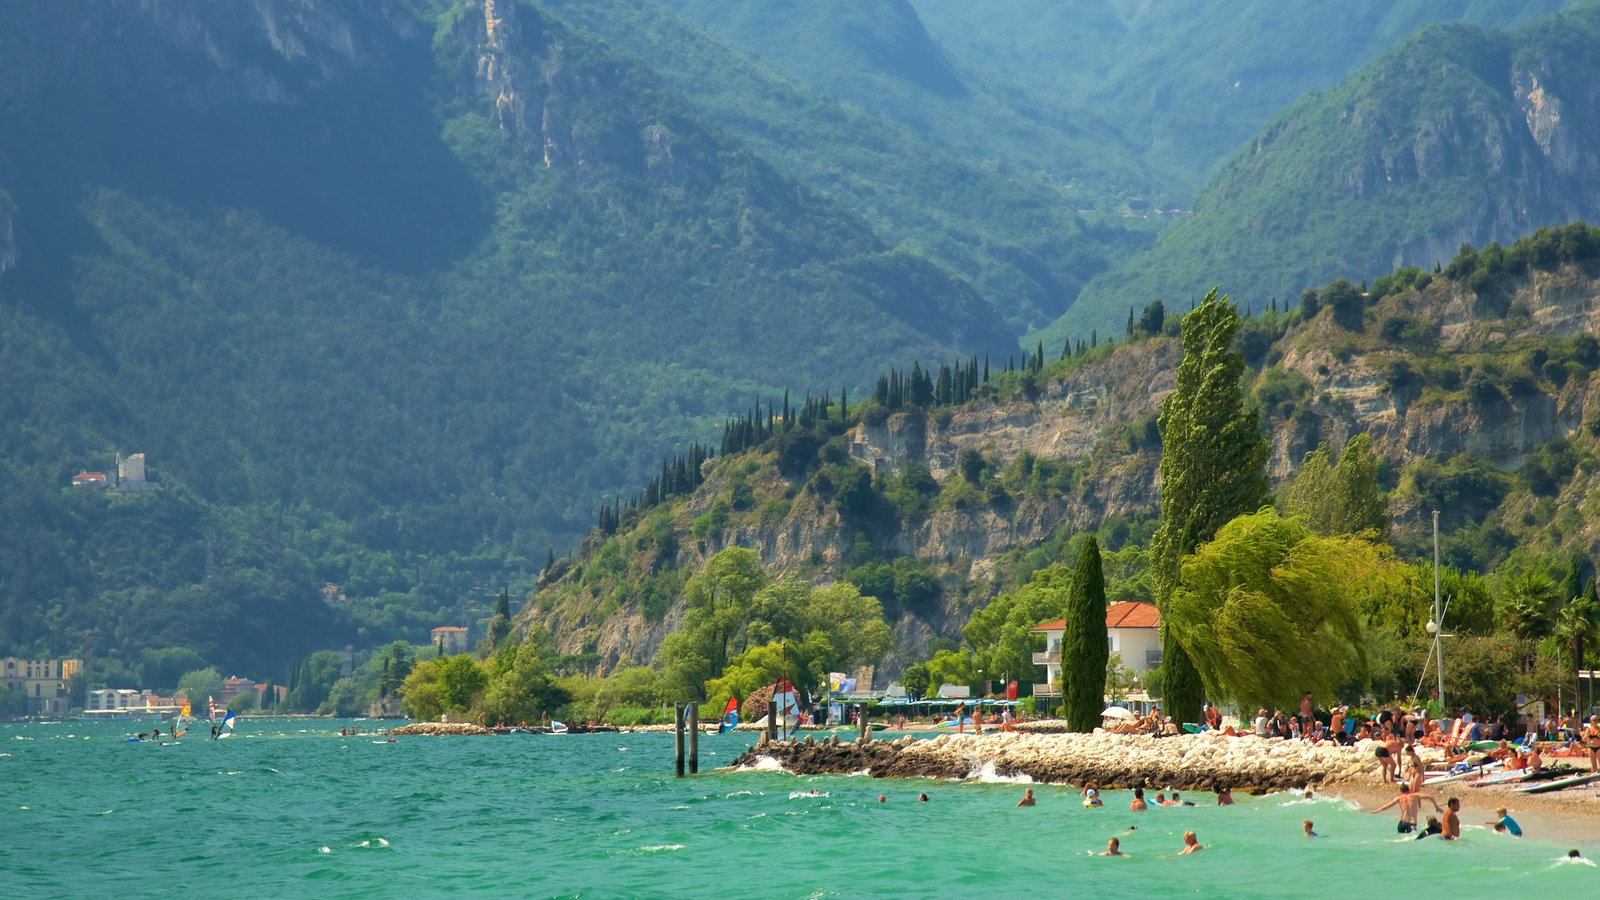 Nago-Torbole featuring a sandy beach, swimming and mountains